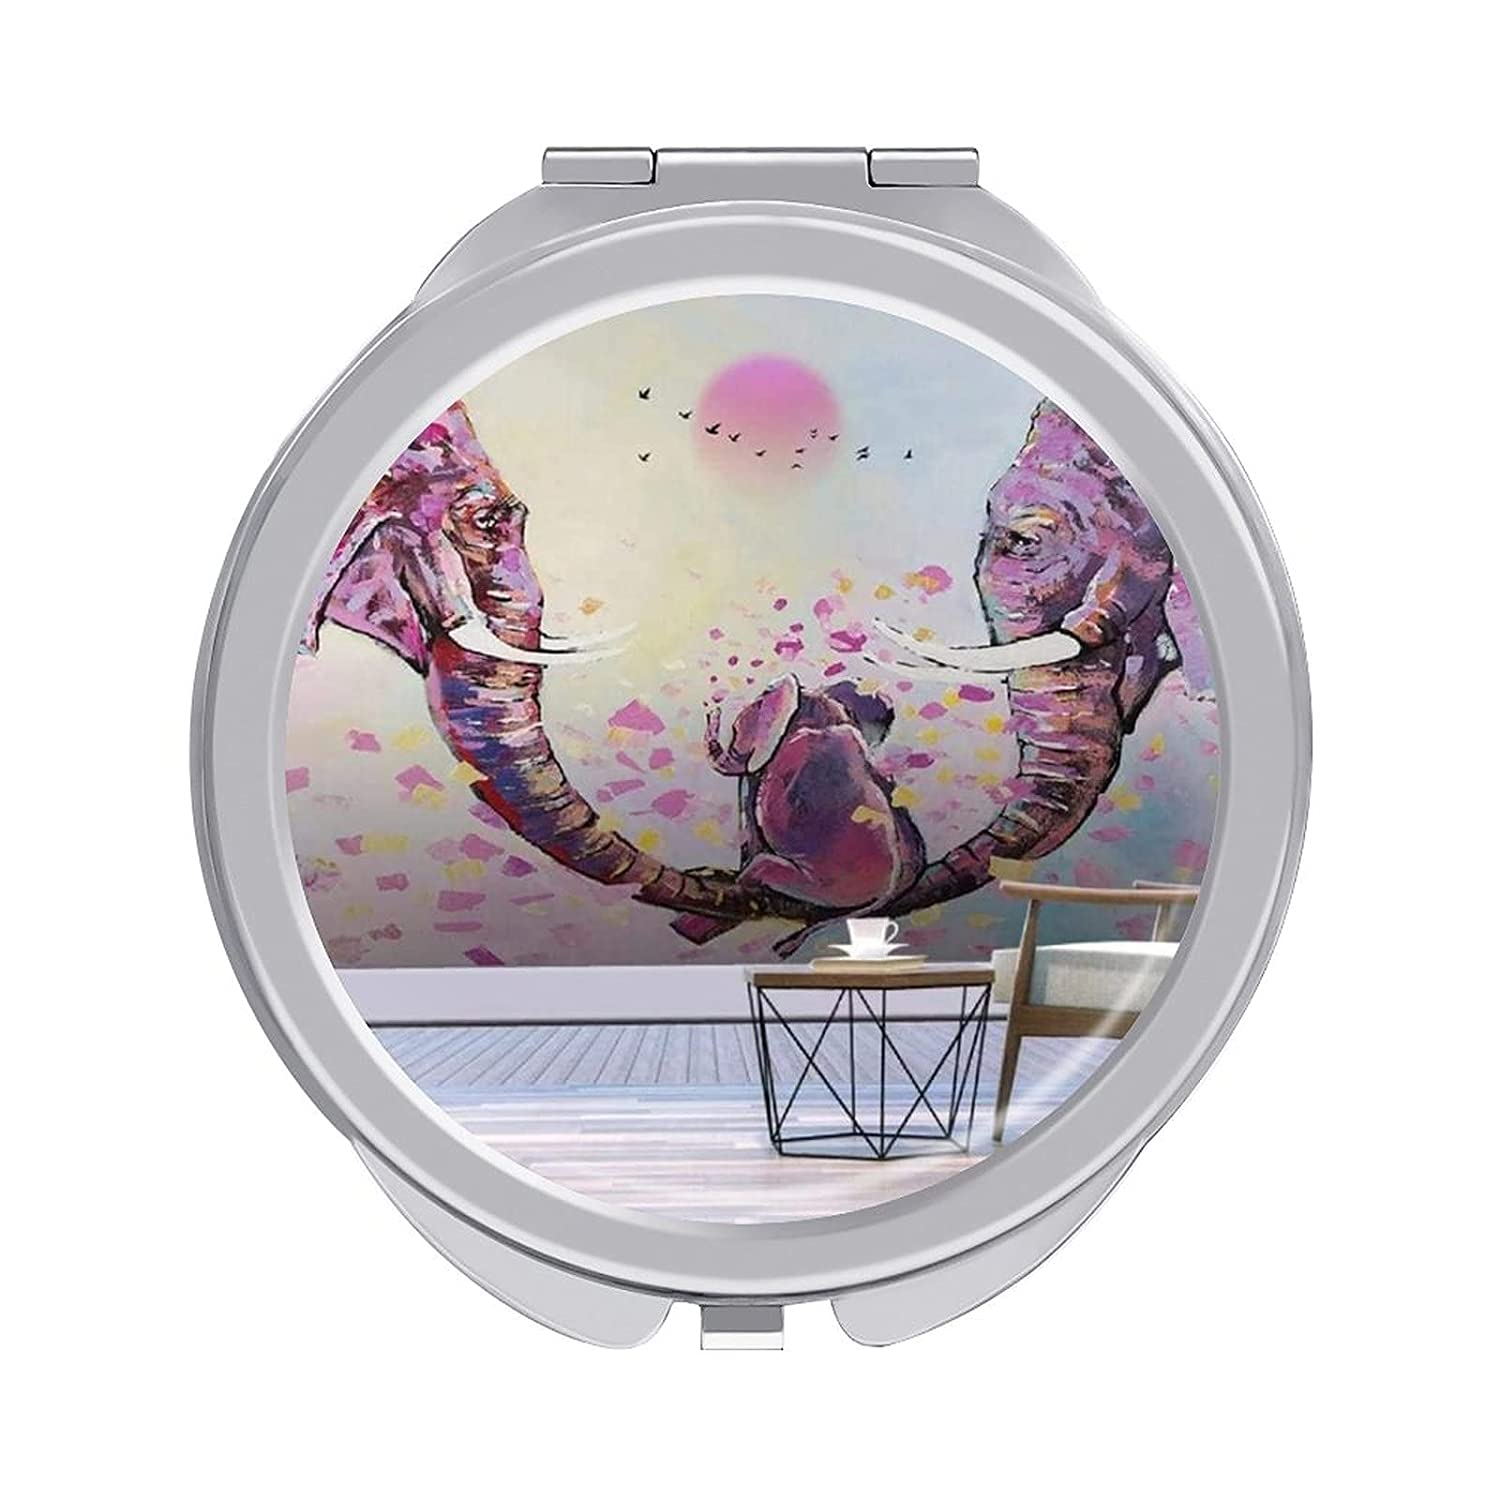 Compact Makeup Mirror for Mom Elephant 2x Kansas City Mall Ma Dealing full price reduction Outdoor Painting 1x